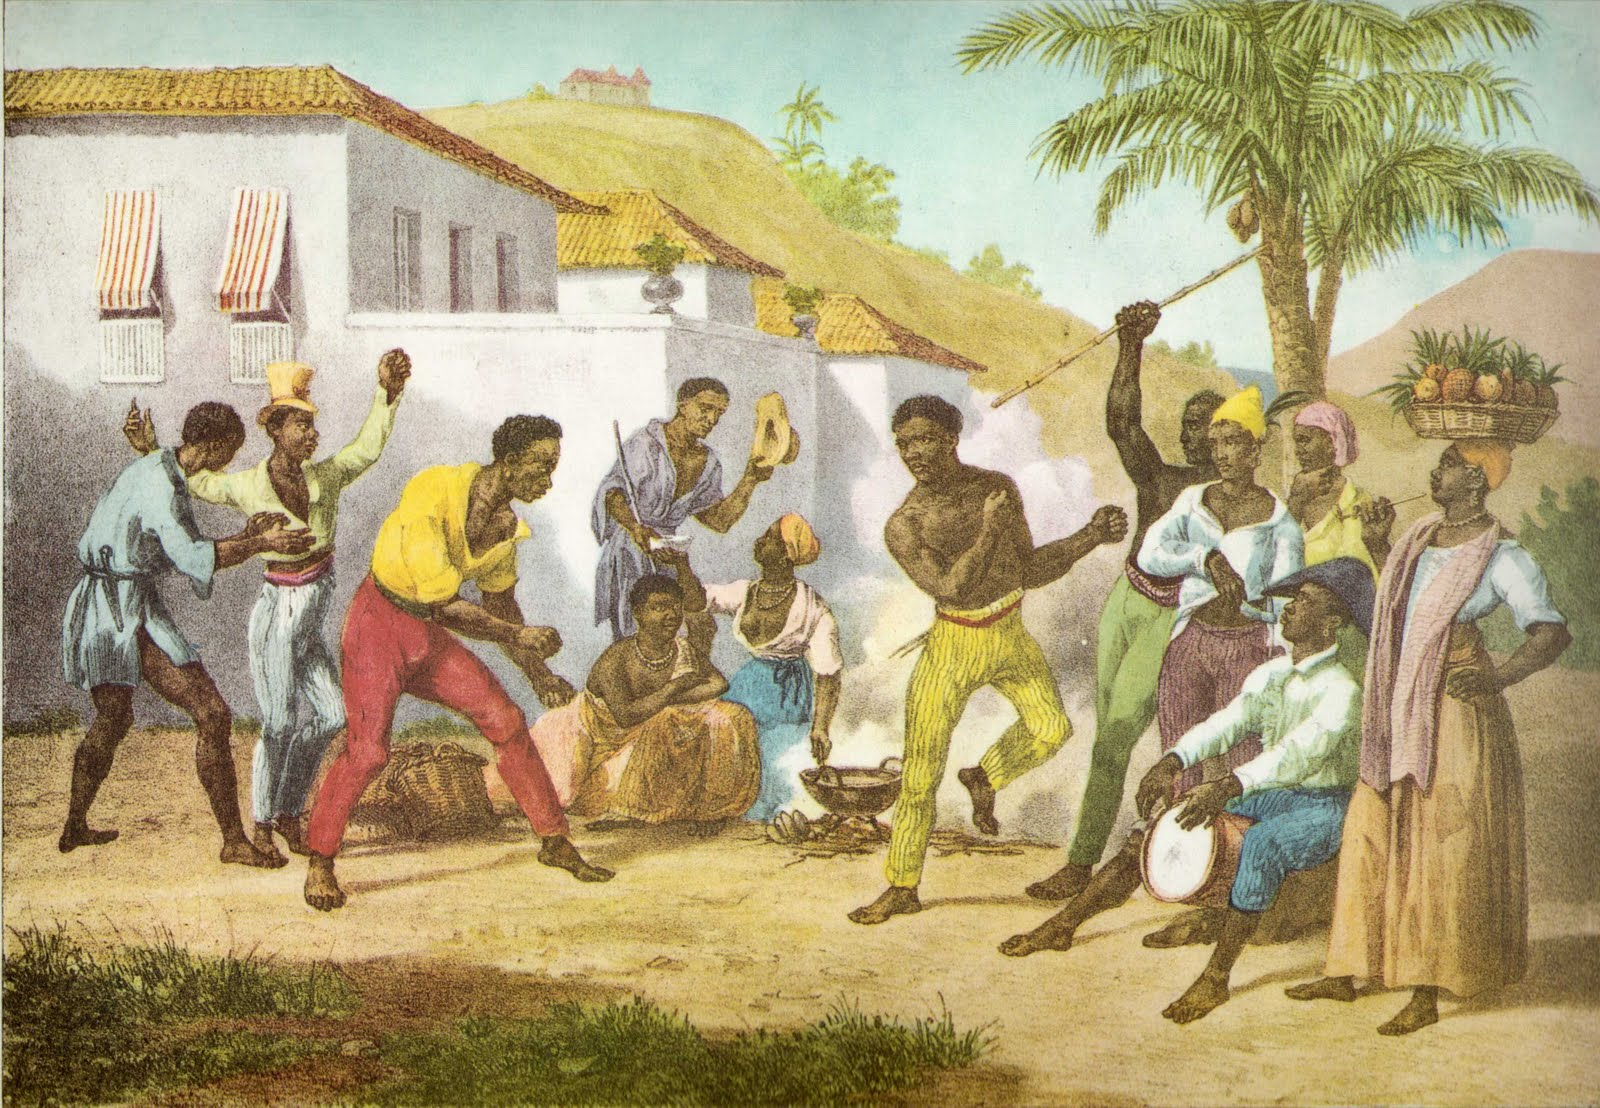 Capoeira or the Dance of War  by  Johann Moritz Rugendas , 1825, published in 1835